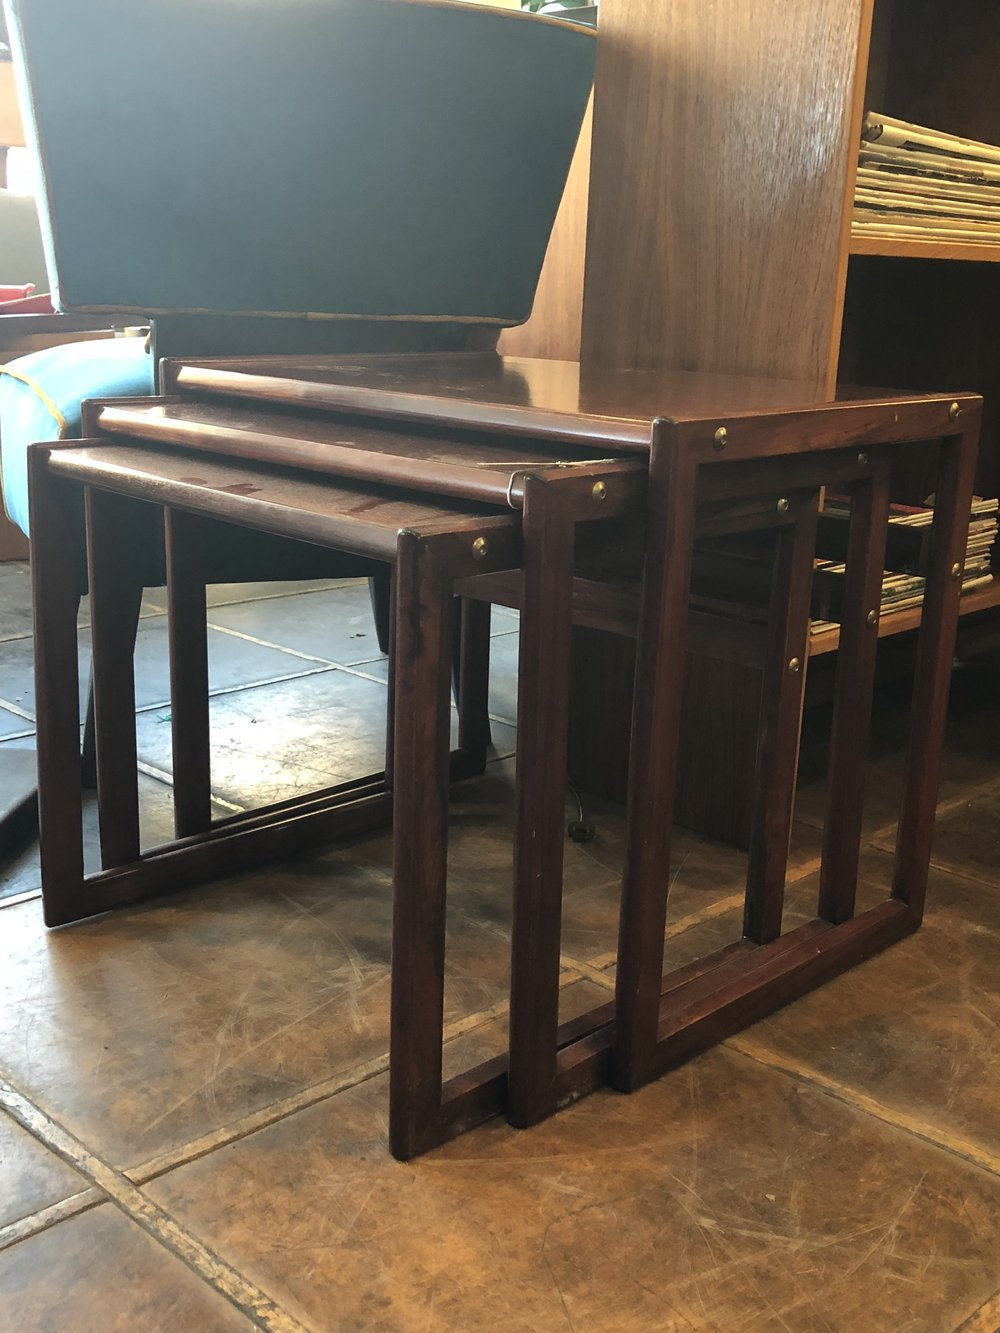 Rosewood Nesting Tables $375.00